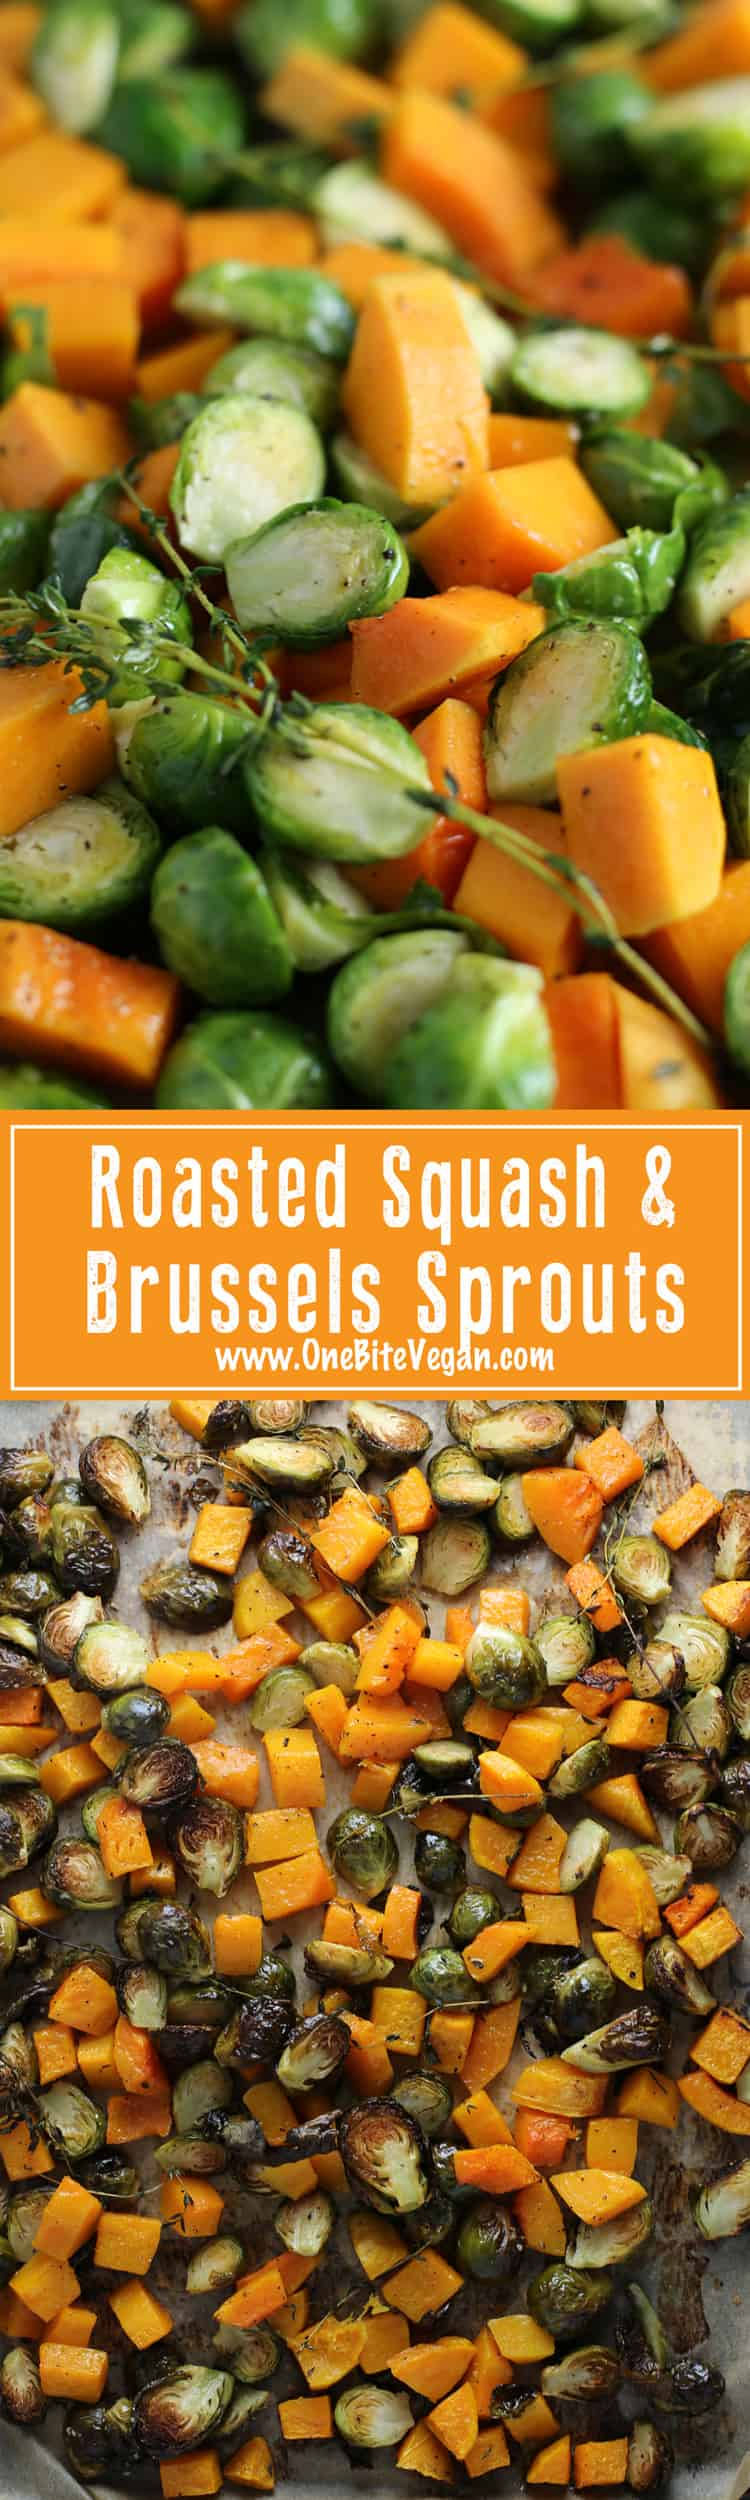 Roasted squash and Brussels sprouts. Simple one pan recipe for roasted butternut squash and roasted Brussels sprouts with fresh thyme.